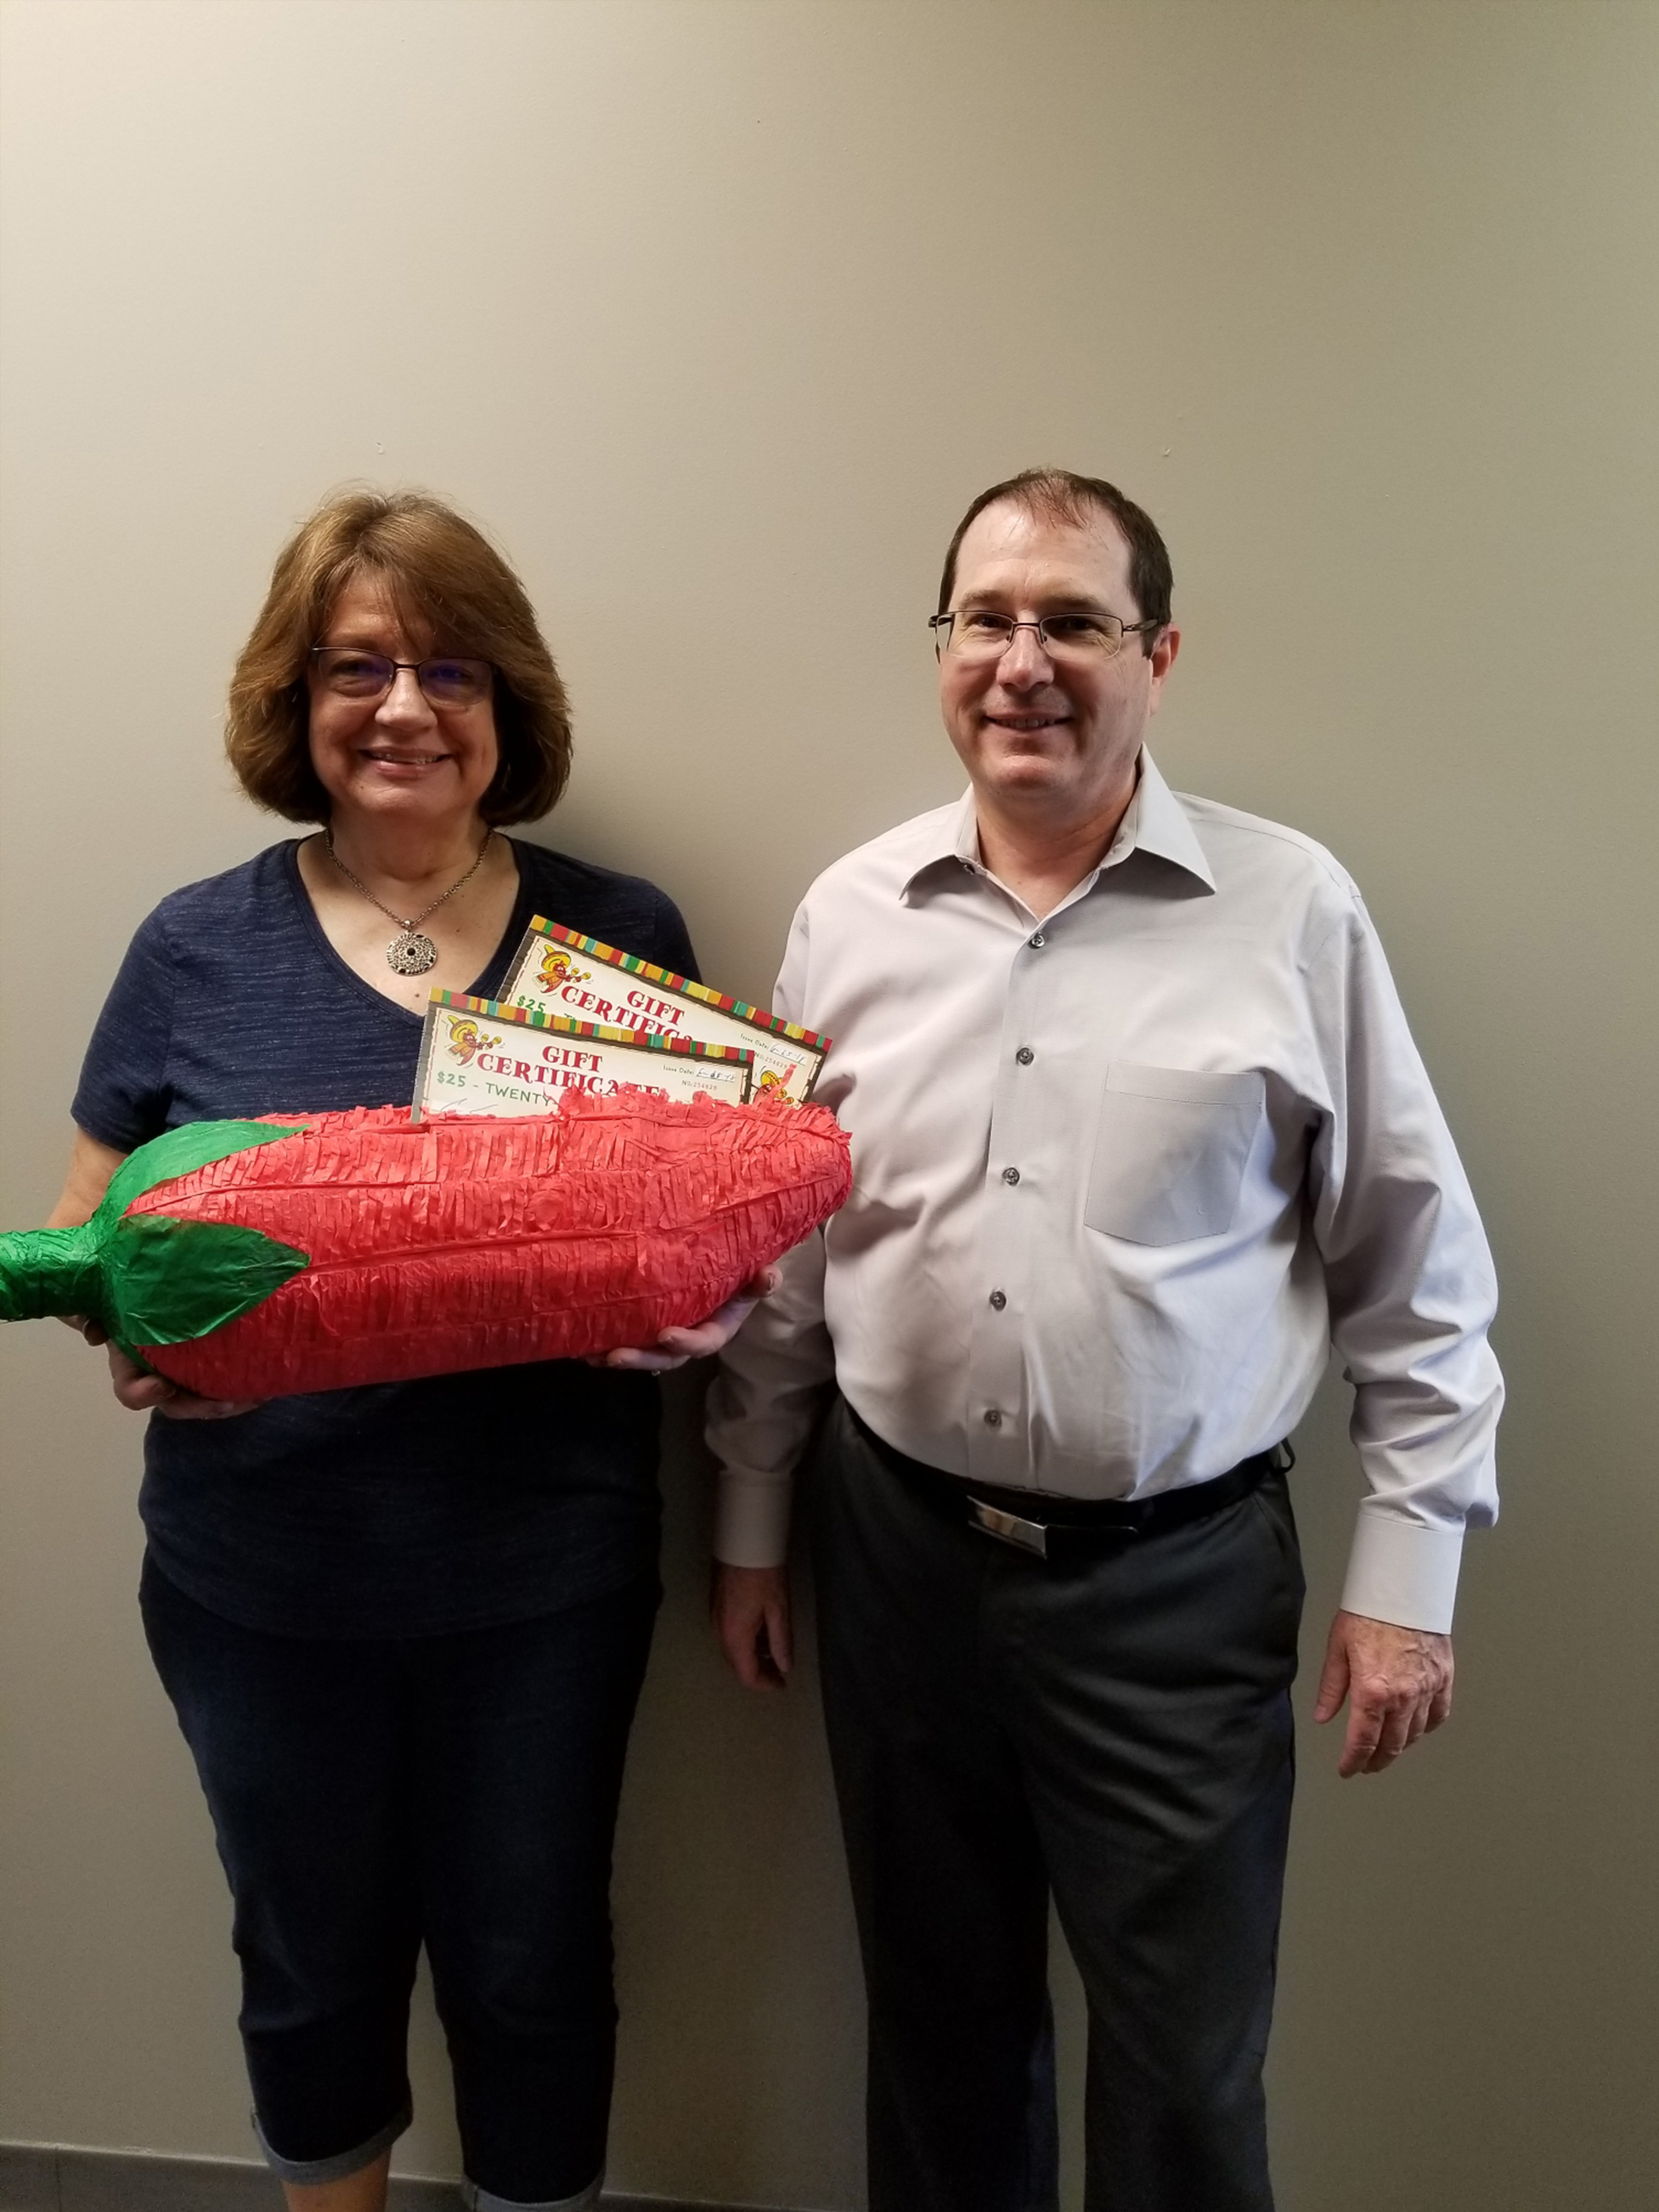 Congratulations to our Patient Appreciation contest winner Kathleen. She received a Fifty dollar gift